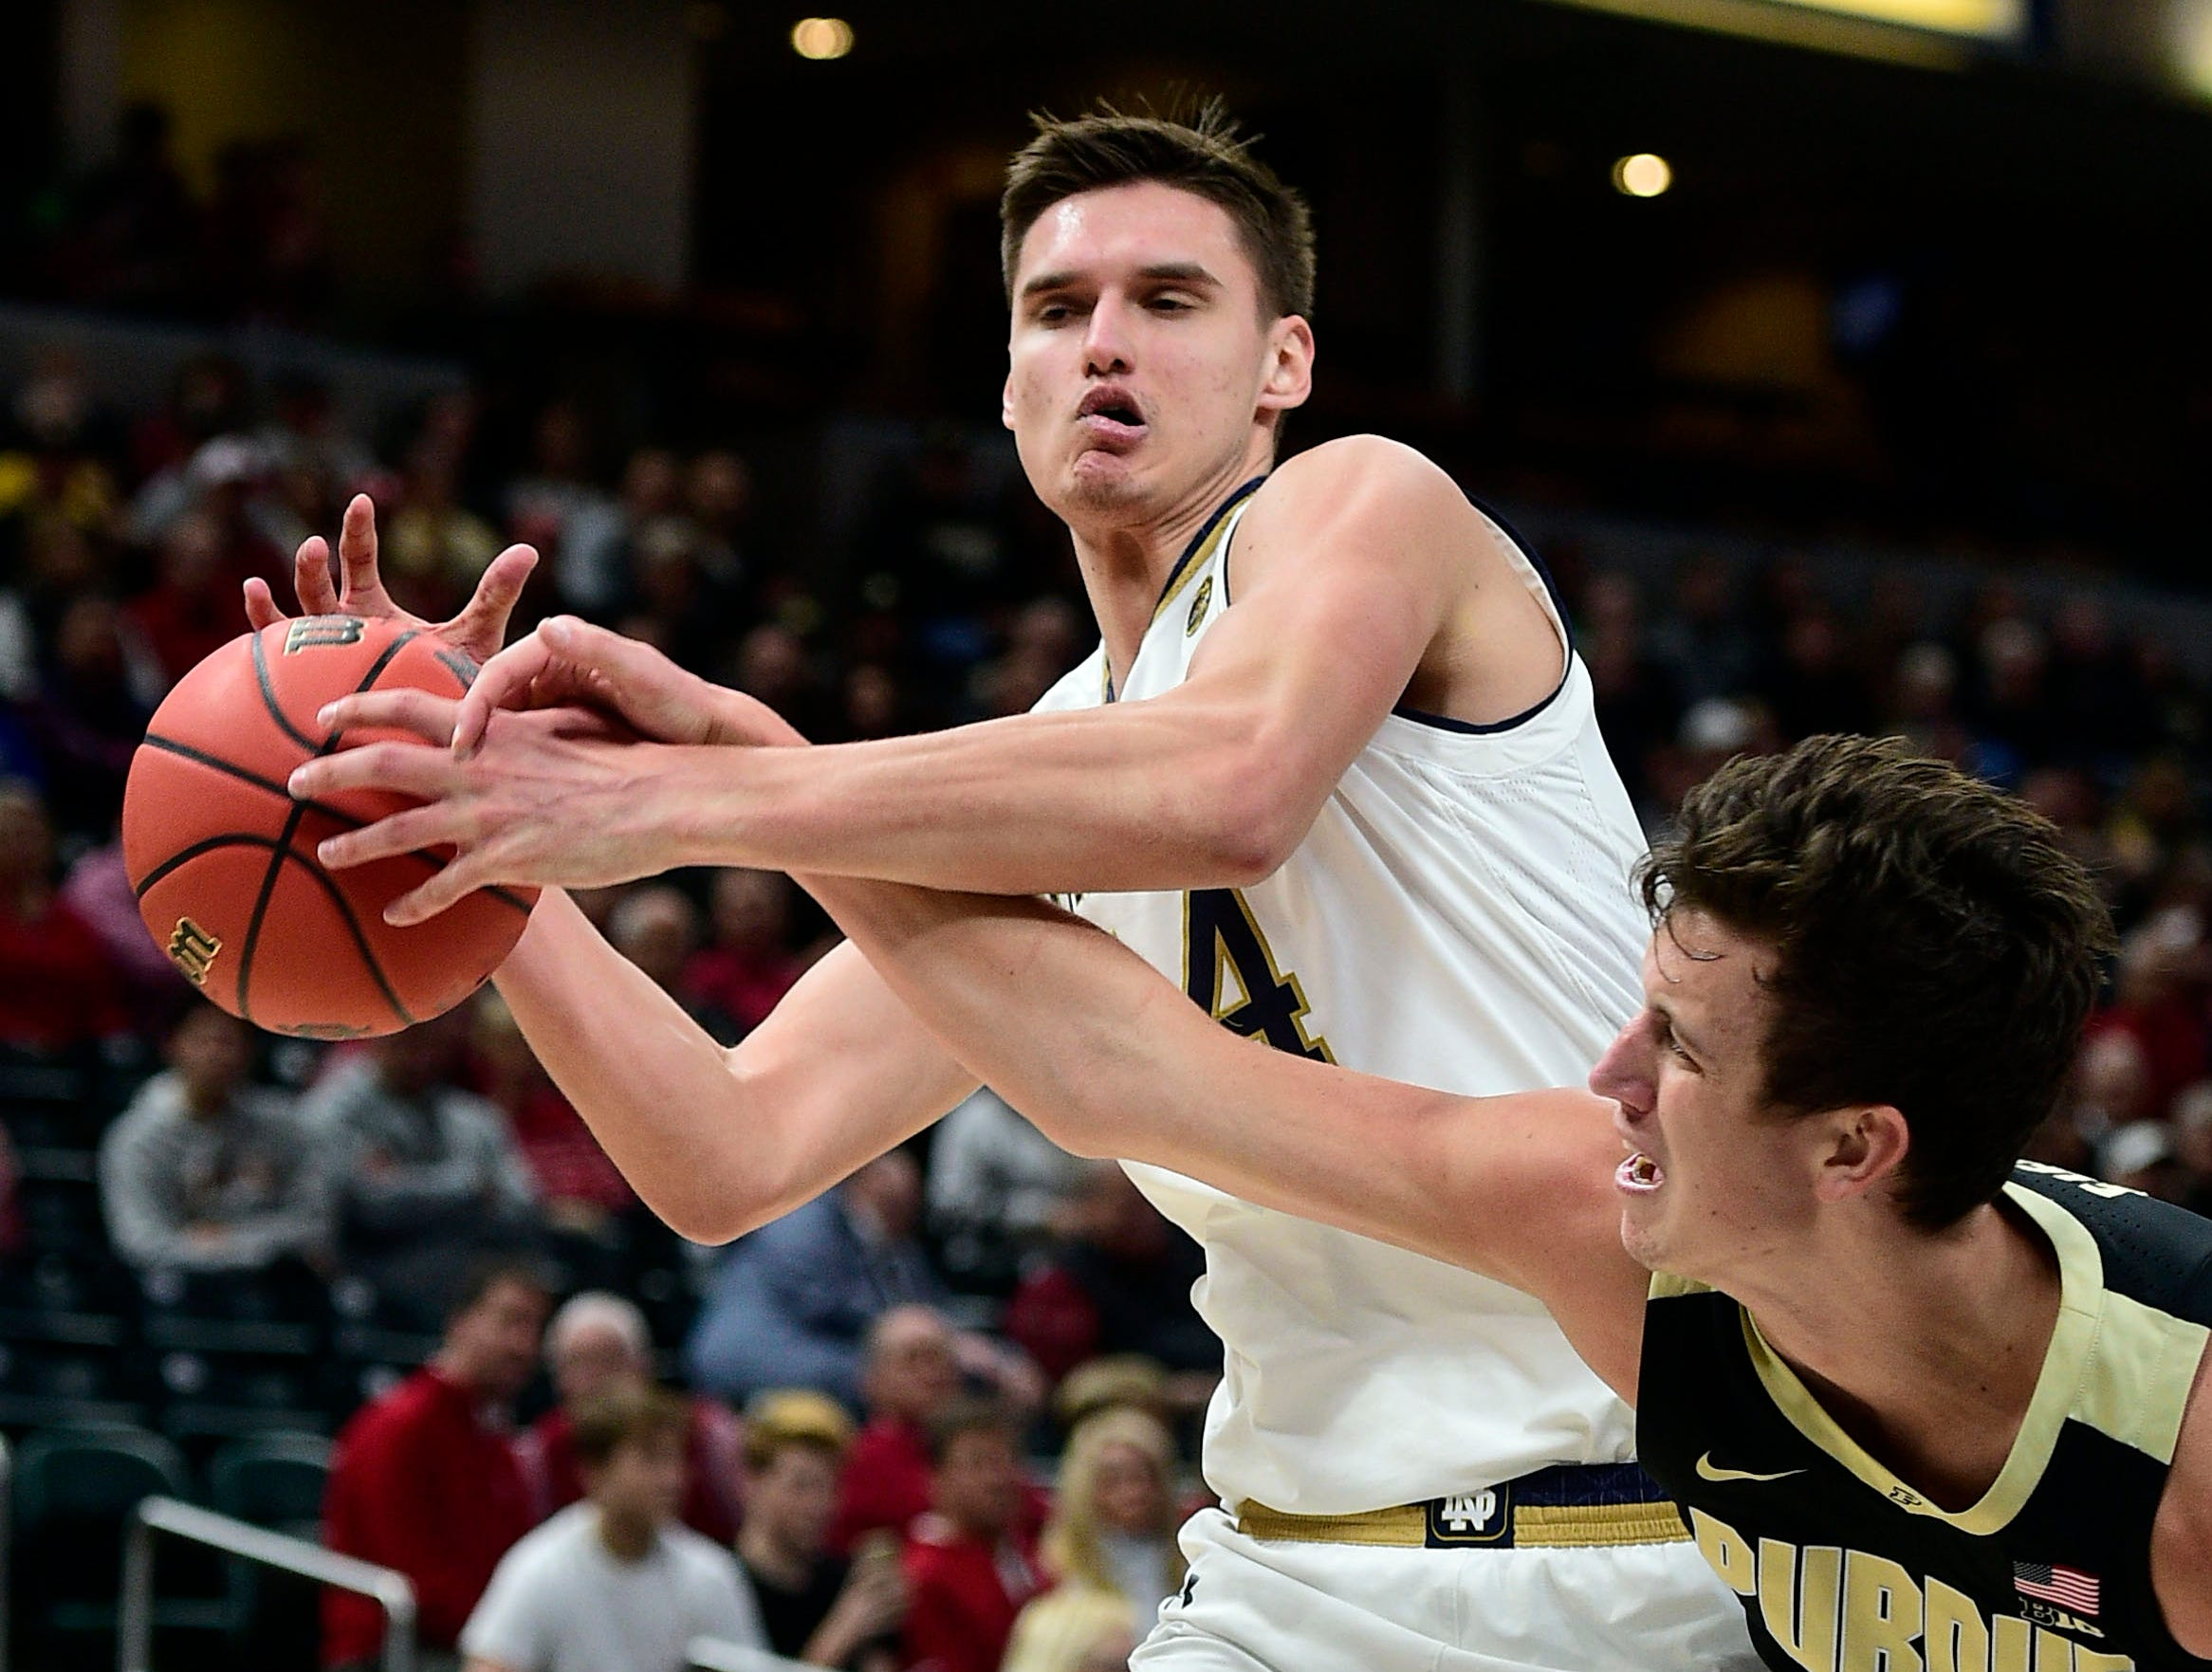 Dec 15, 2018; Indianapolis, IN, USA; Purdue Boilermaker guards Grady Eifert (24) goes after a rebound in the first half against Notre Dame Fighting Irish forward Nate Laszewski (14) at Bankers Life Fieldhouse. Mandatory Credit: Thomas J. Russo-USA TODAY Sports